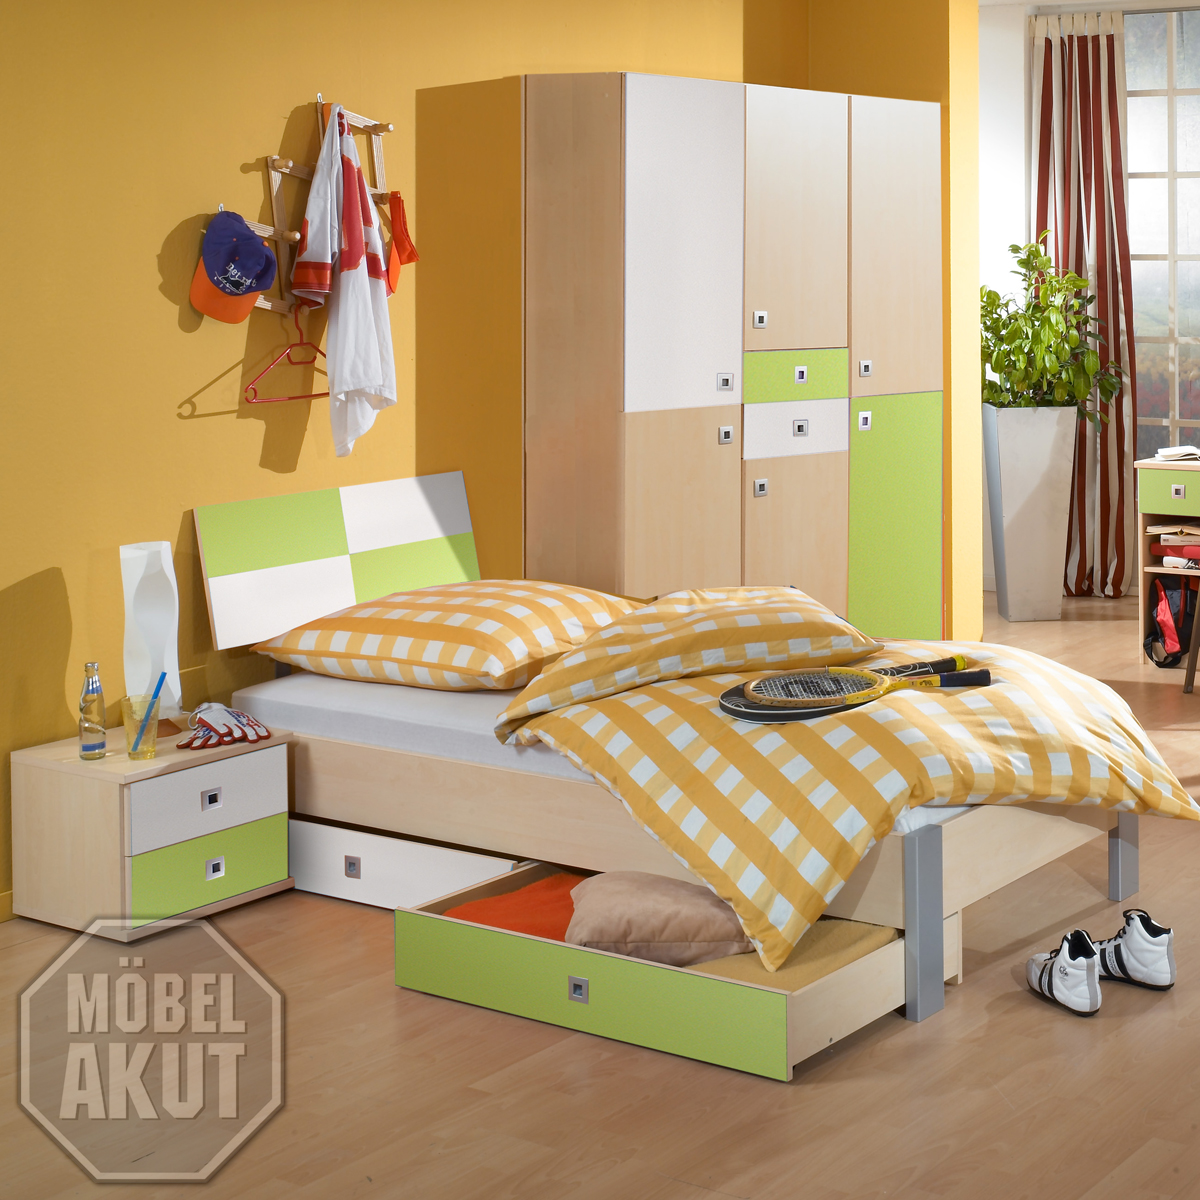 jugendzimmer sunny set 3 teilig kinderzimmer ahorn gr n und wei ebay. Black Bedroom Furniture Sets. Home Design Ideas